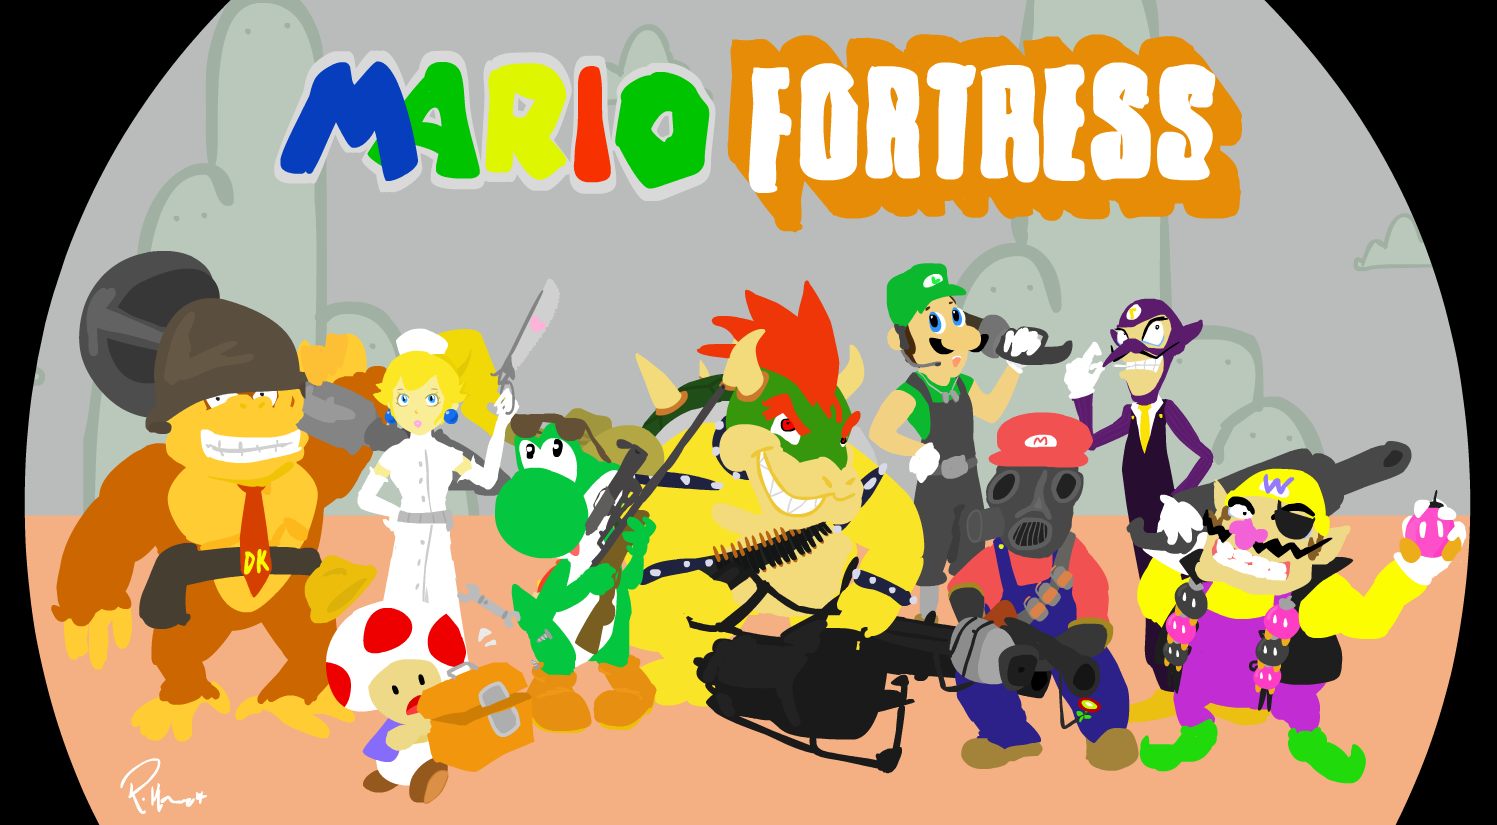 [Image: Mario_Fortress_by_metallic_orb.png]